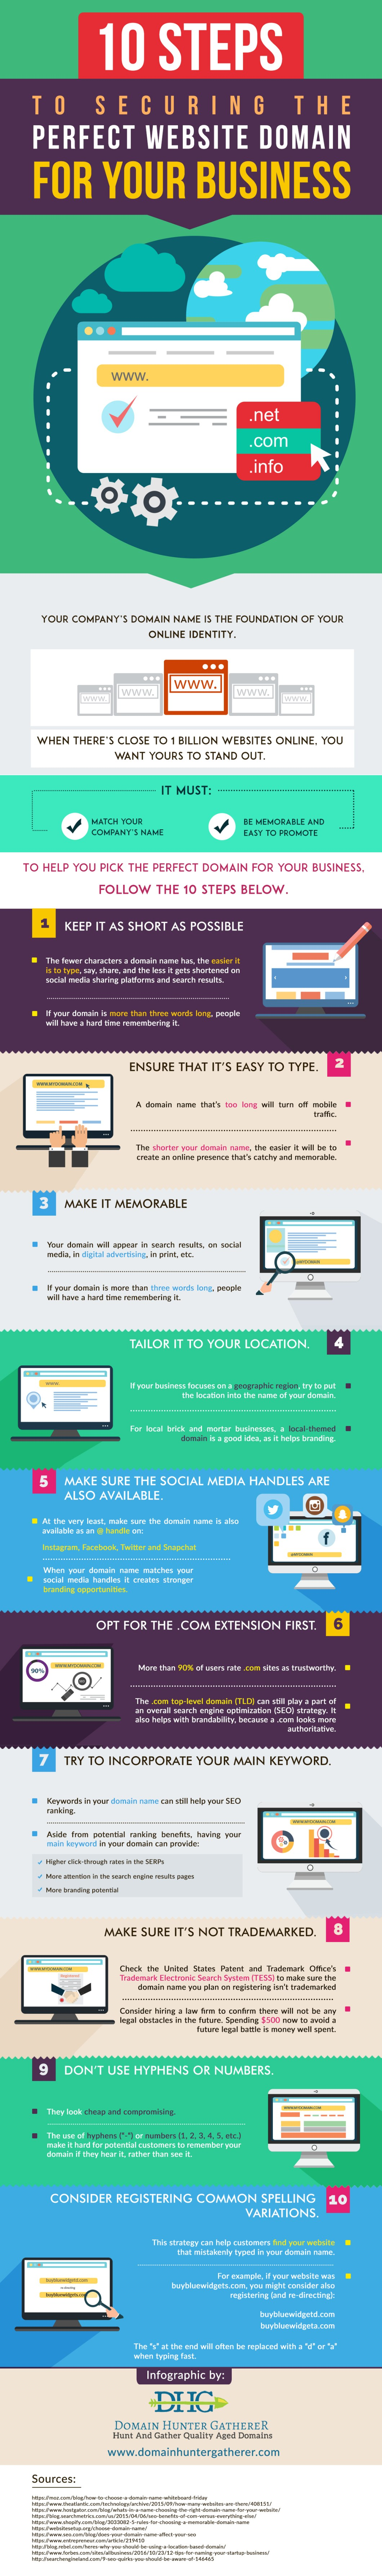 The 10-Step Method to Getting the Best Domain Name for Your Business - Infographic